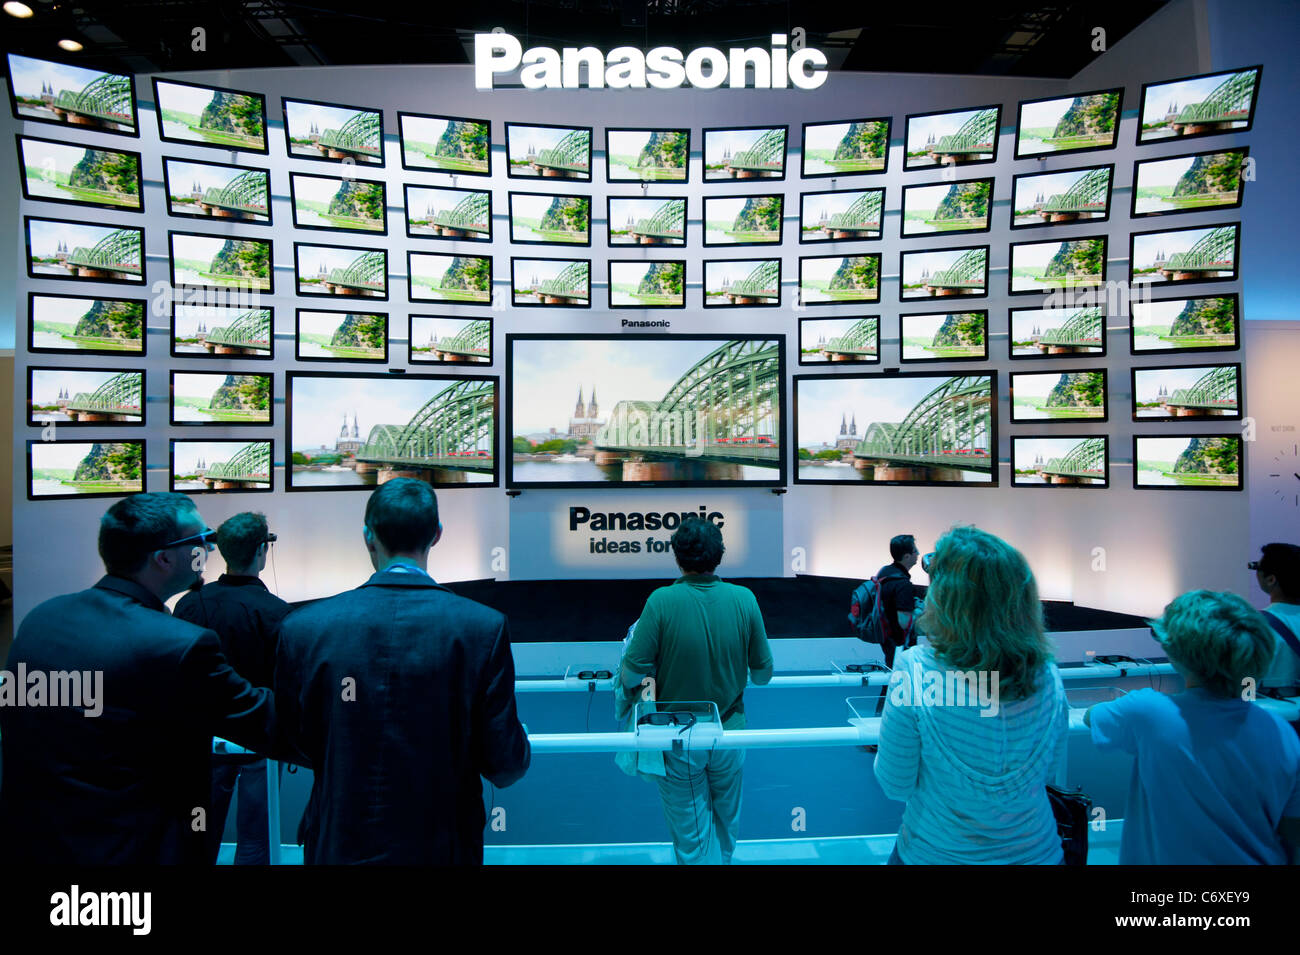 Panasonic stand with many 3D television screens at IFA consumer electronics trade fair in Berlin Germany 2011 - Stock Image